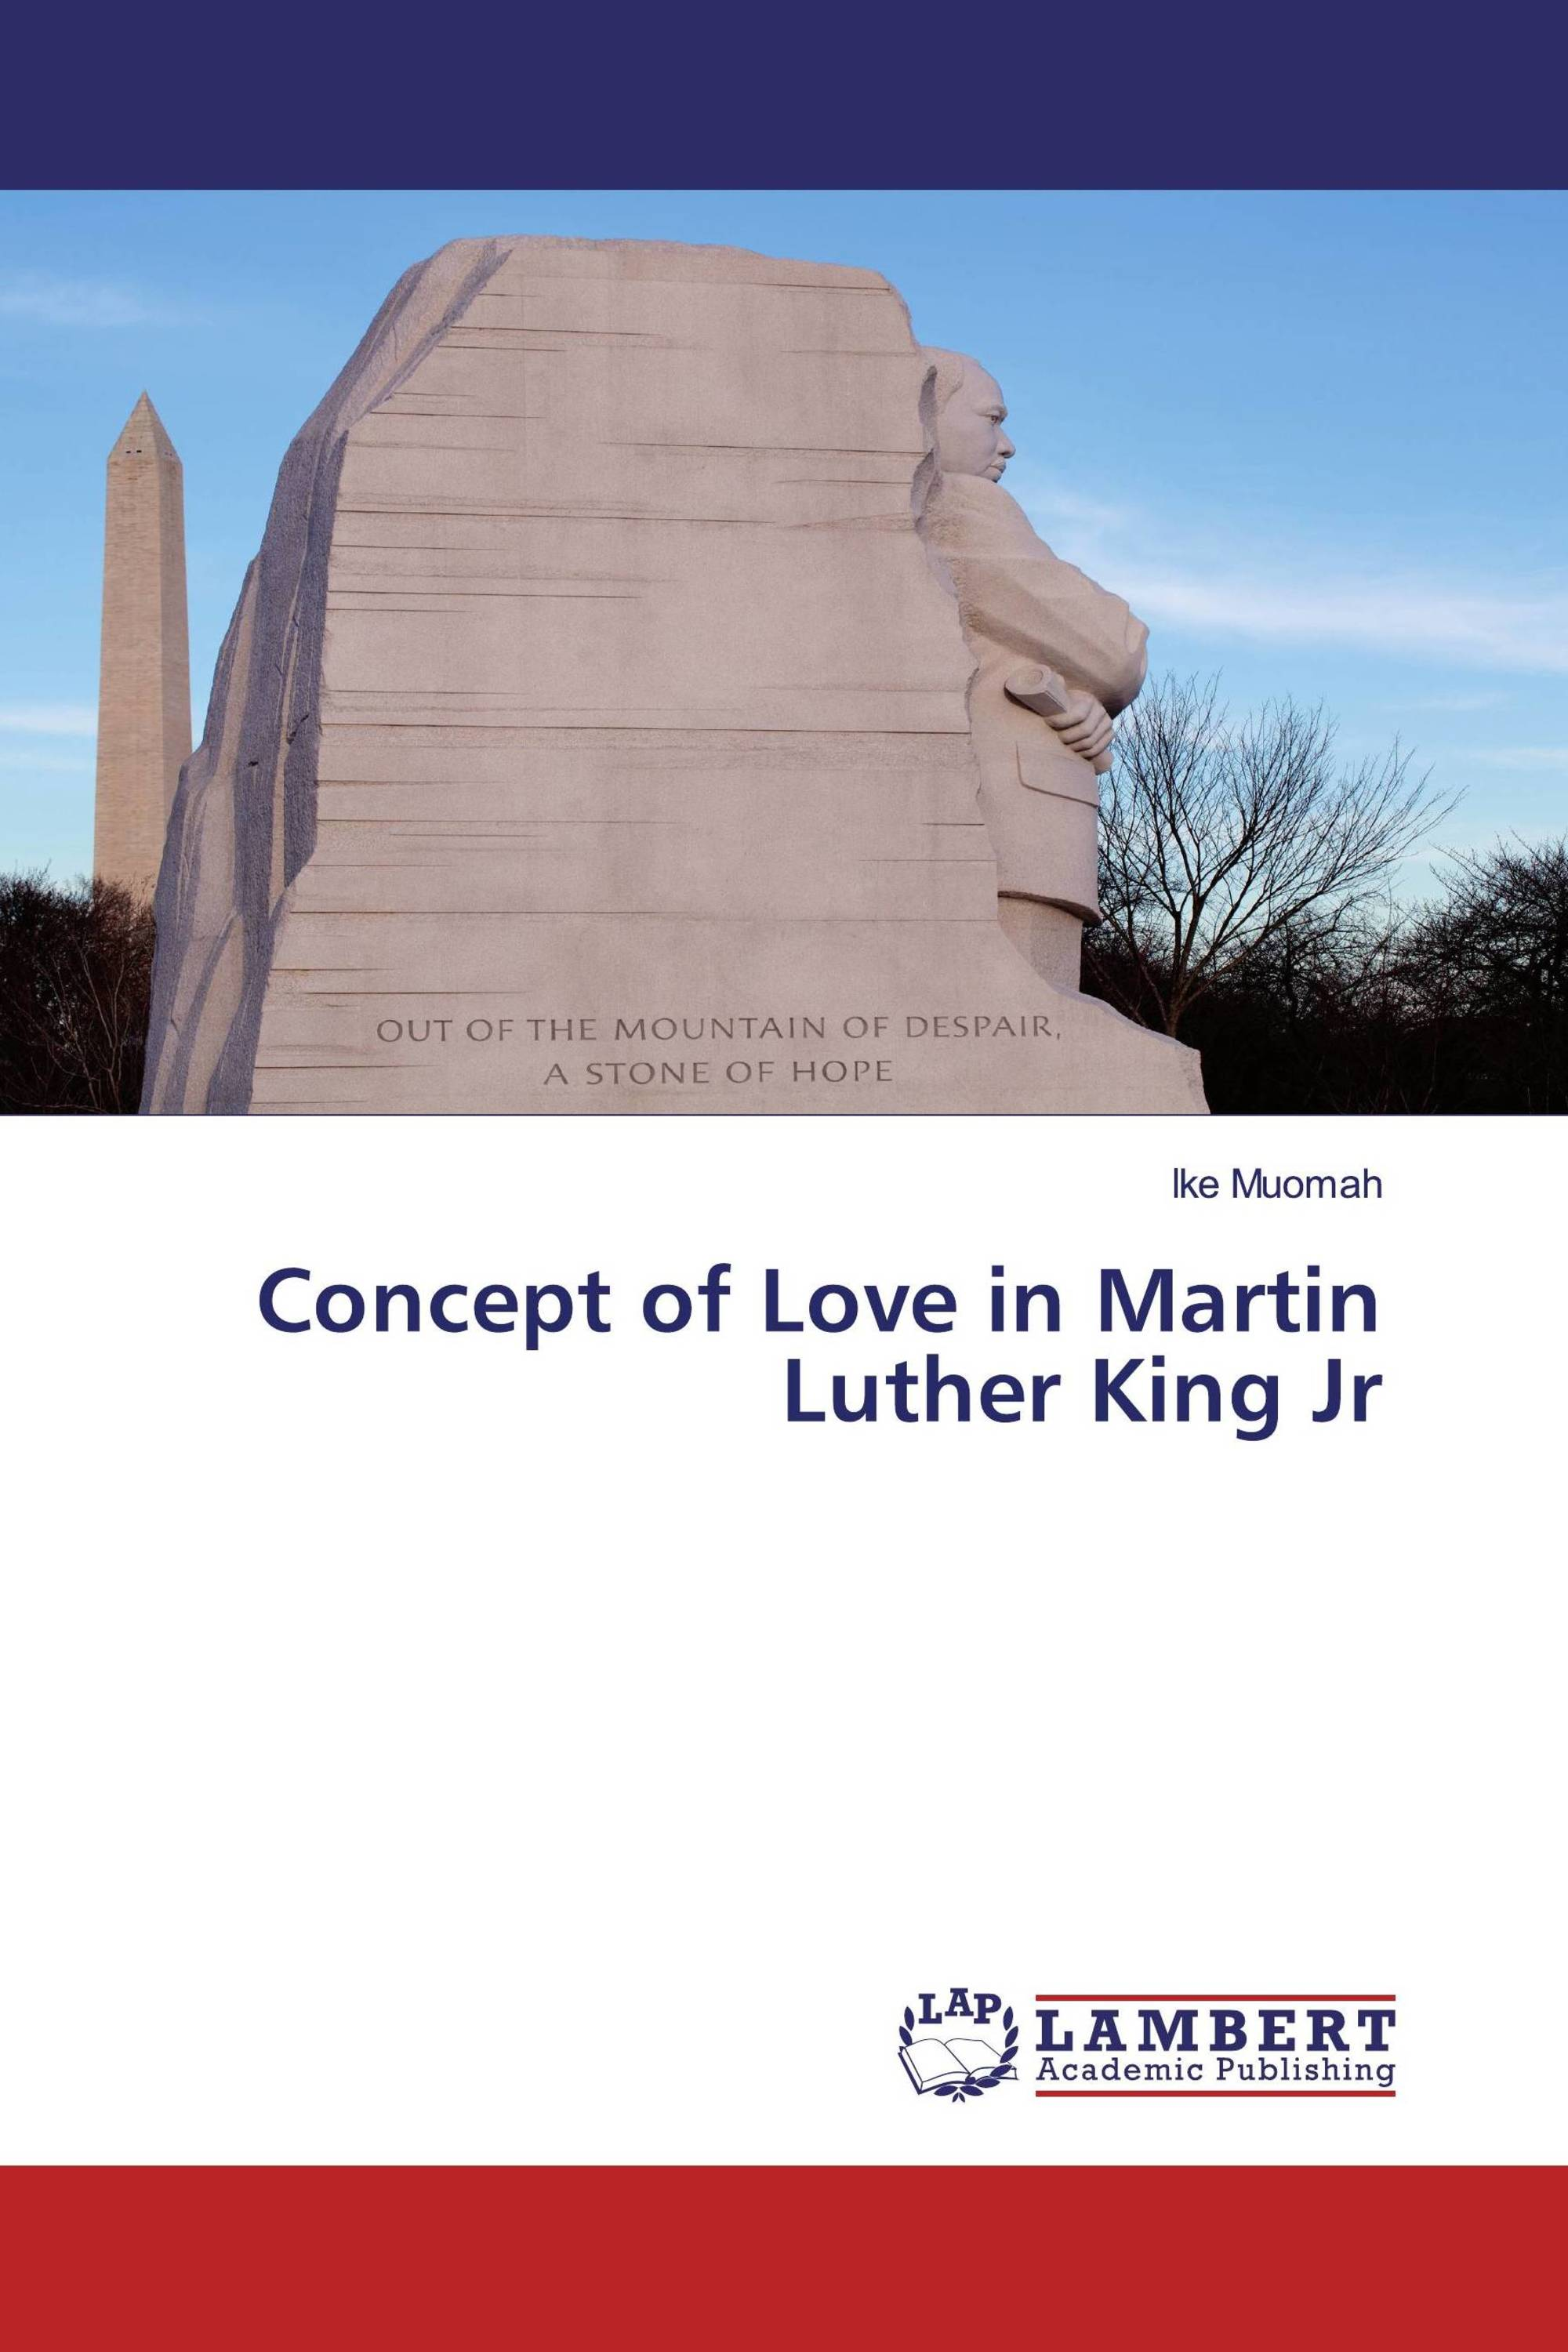 Concept of Love in Martin Luther King Jr